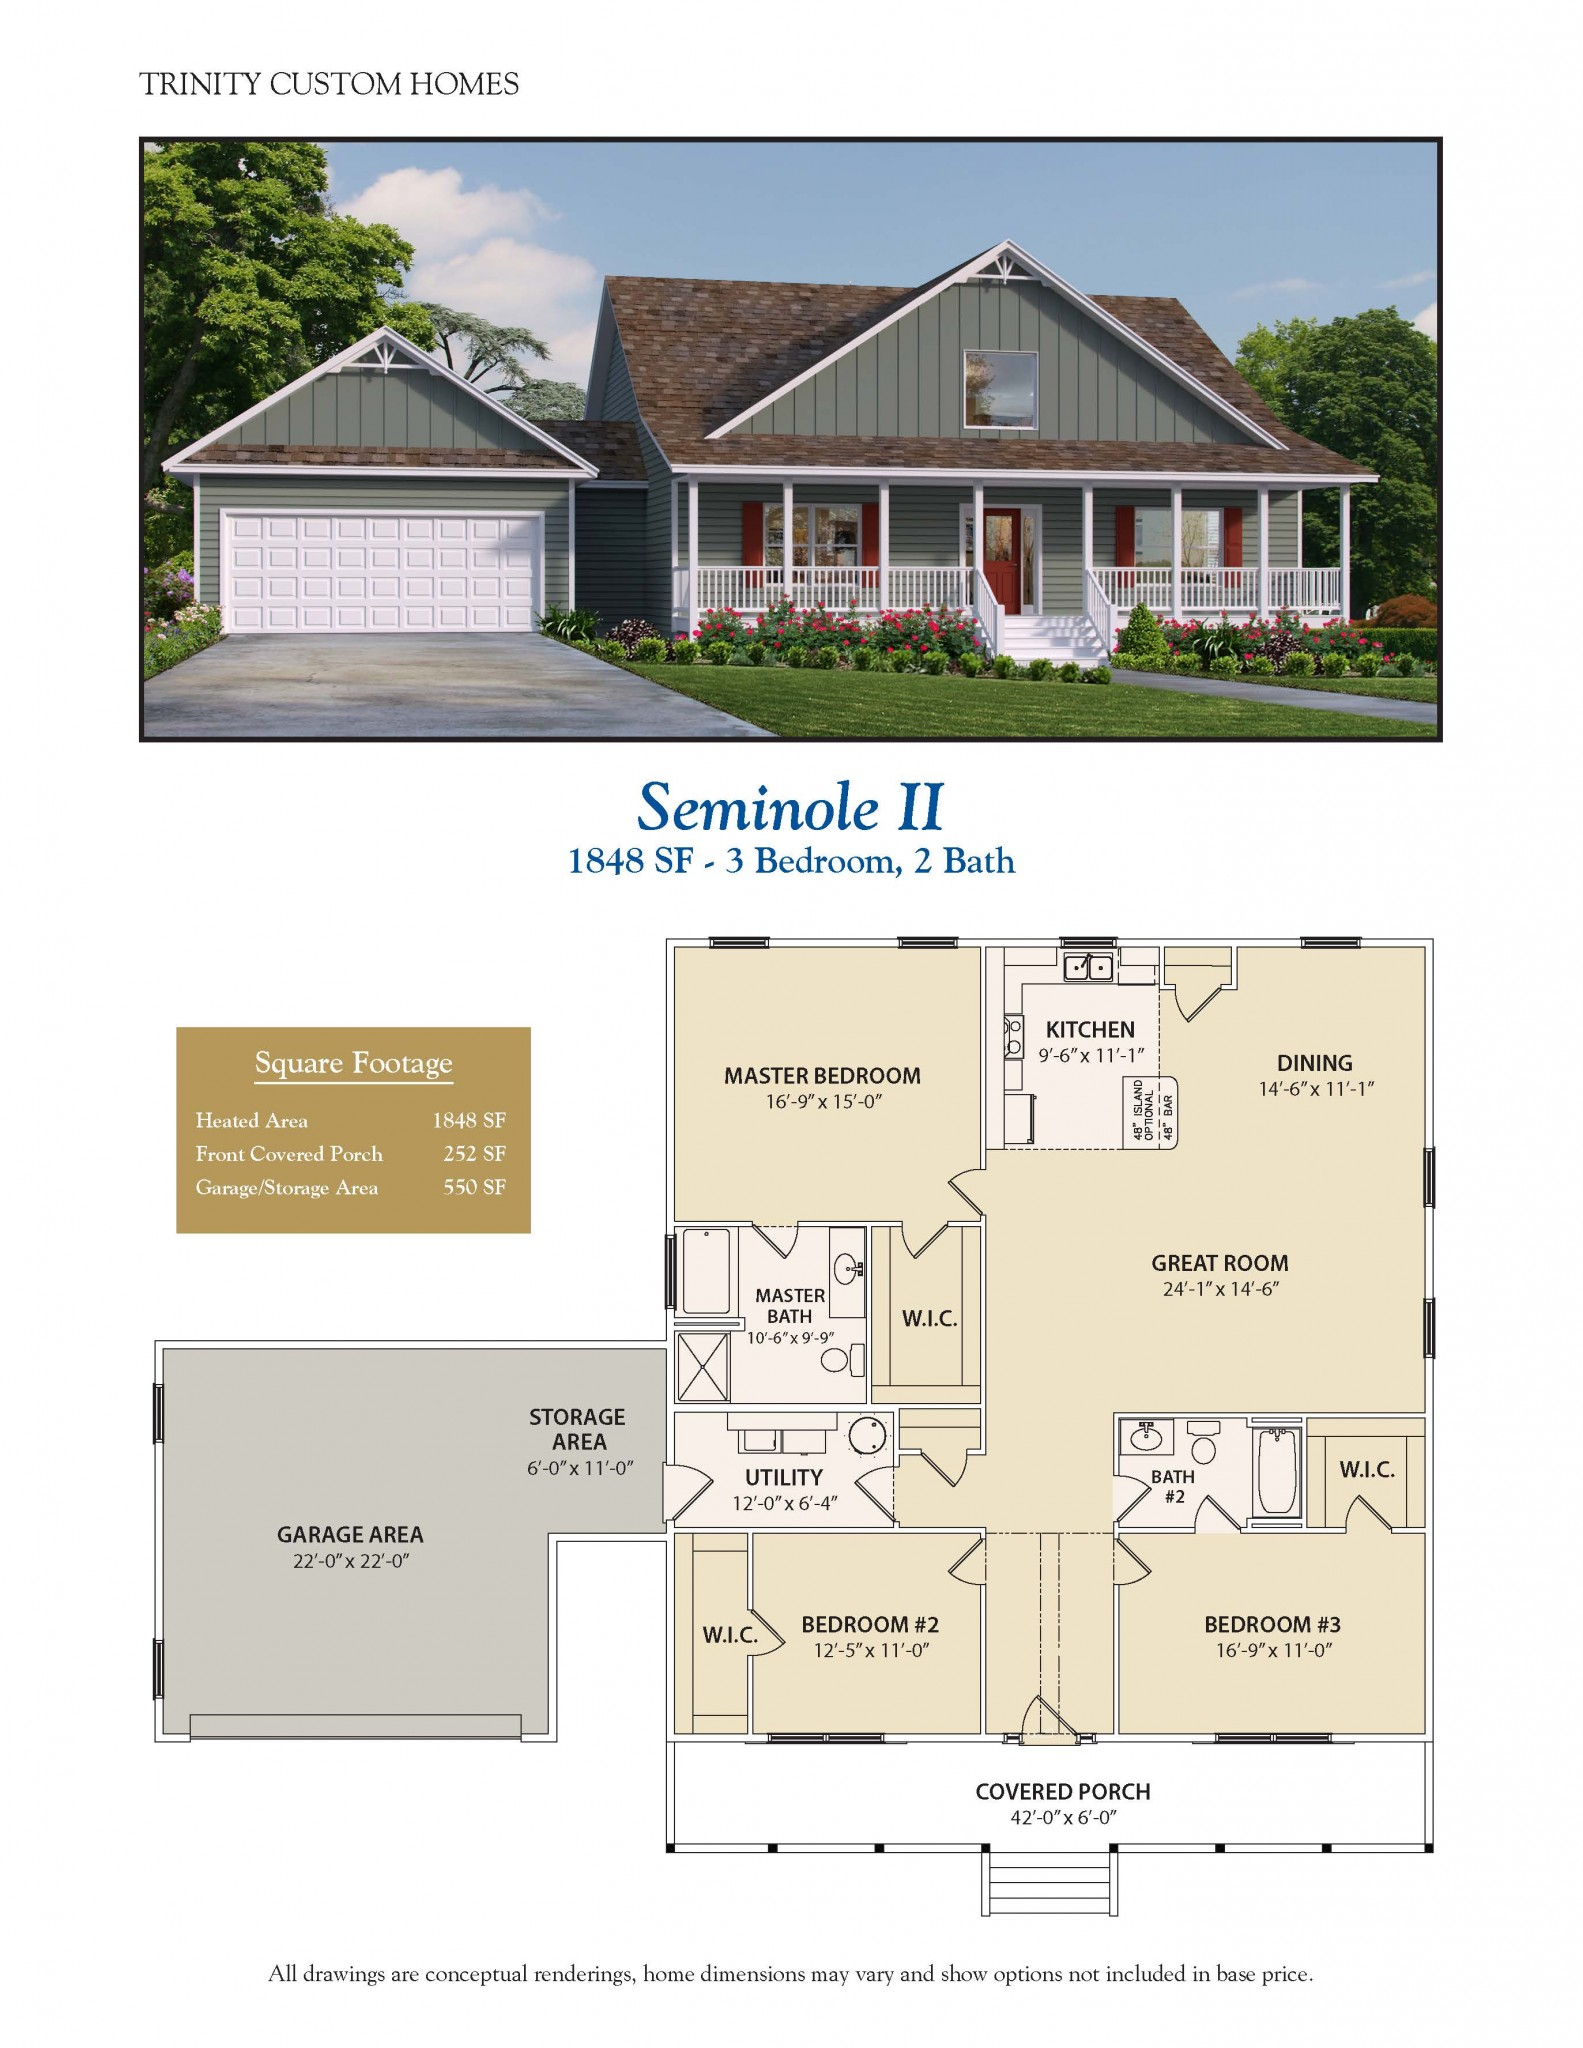 Seminole ii welcome to trinity custom homes for Trinity house plans